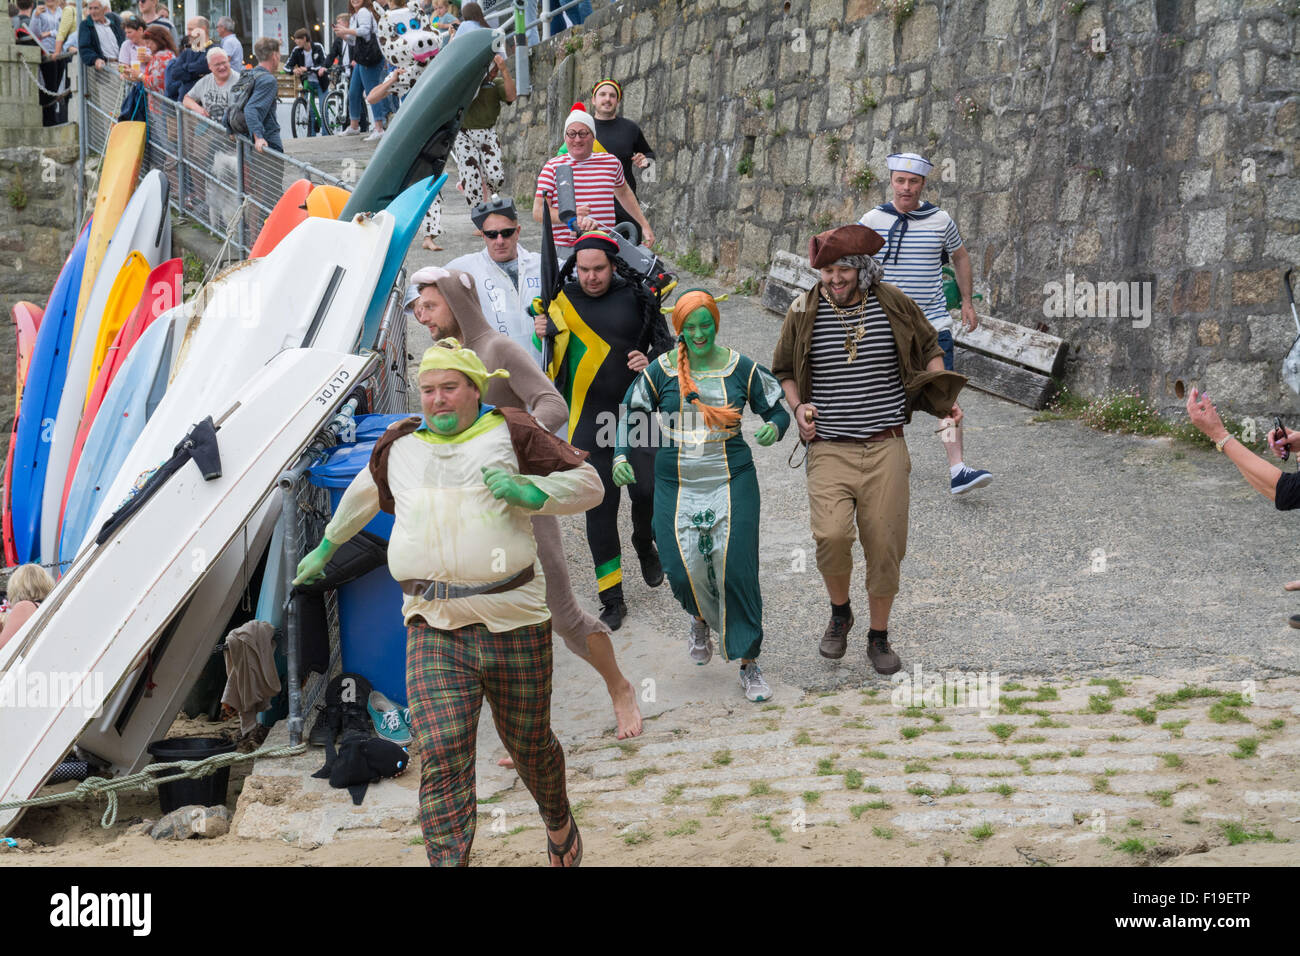 Mousehole, Cornwall, UK. 29th August 2015. The annual boat punt race where competitors have to race to the pub drink - Stock Image